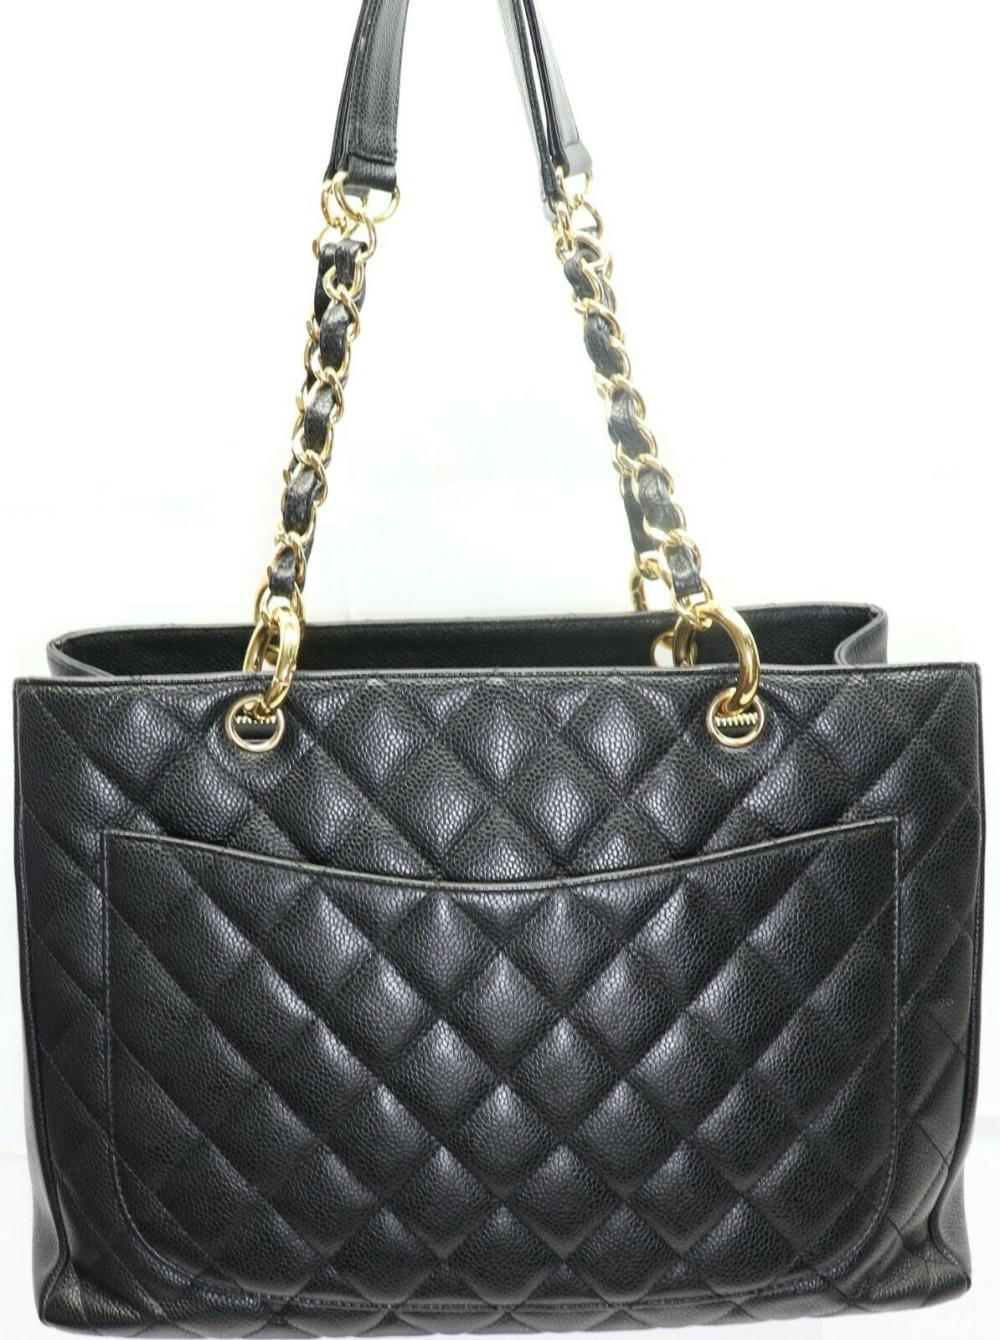 2e3ec41f6cfbd2 Chanel GST Grand Shopping Black Caviar Quilted Leather Bag